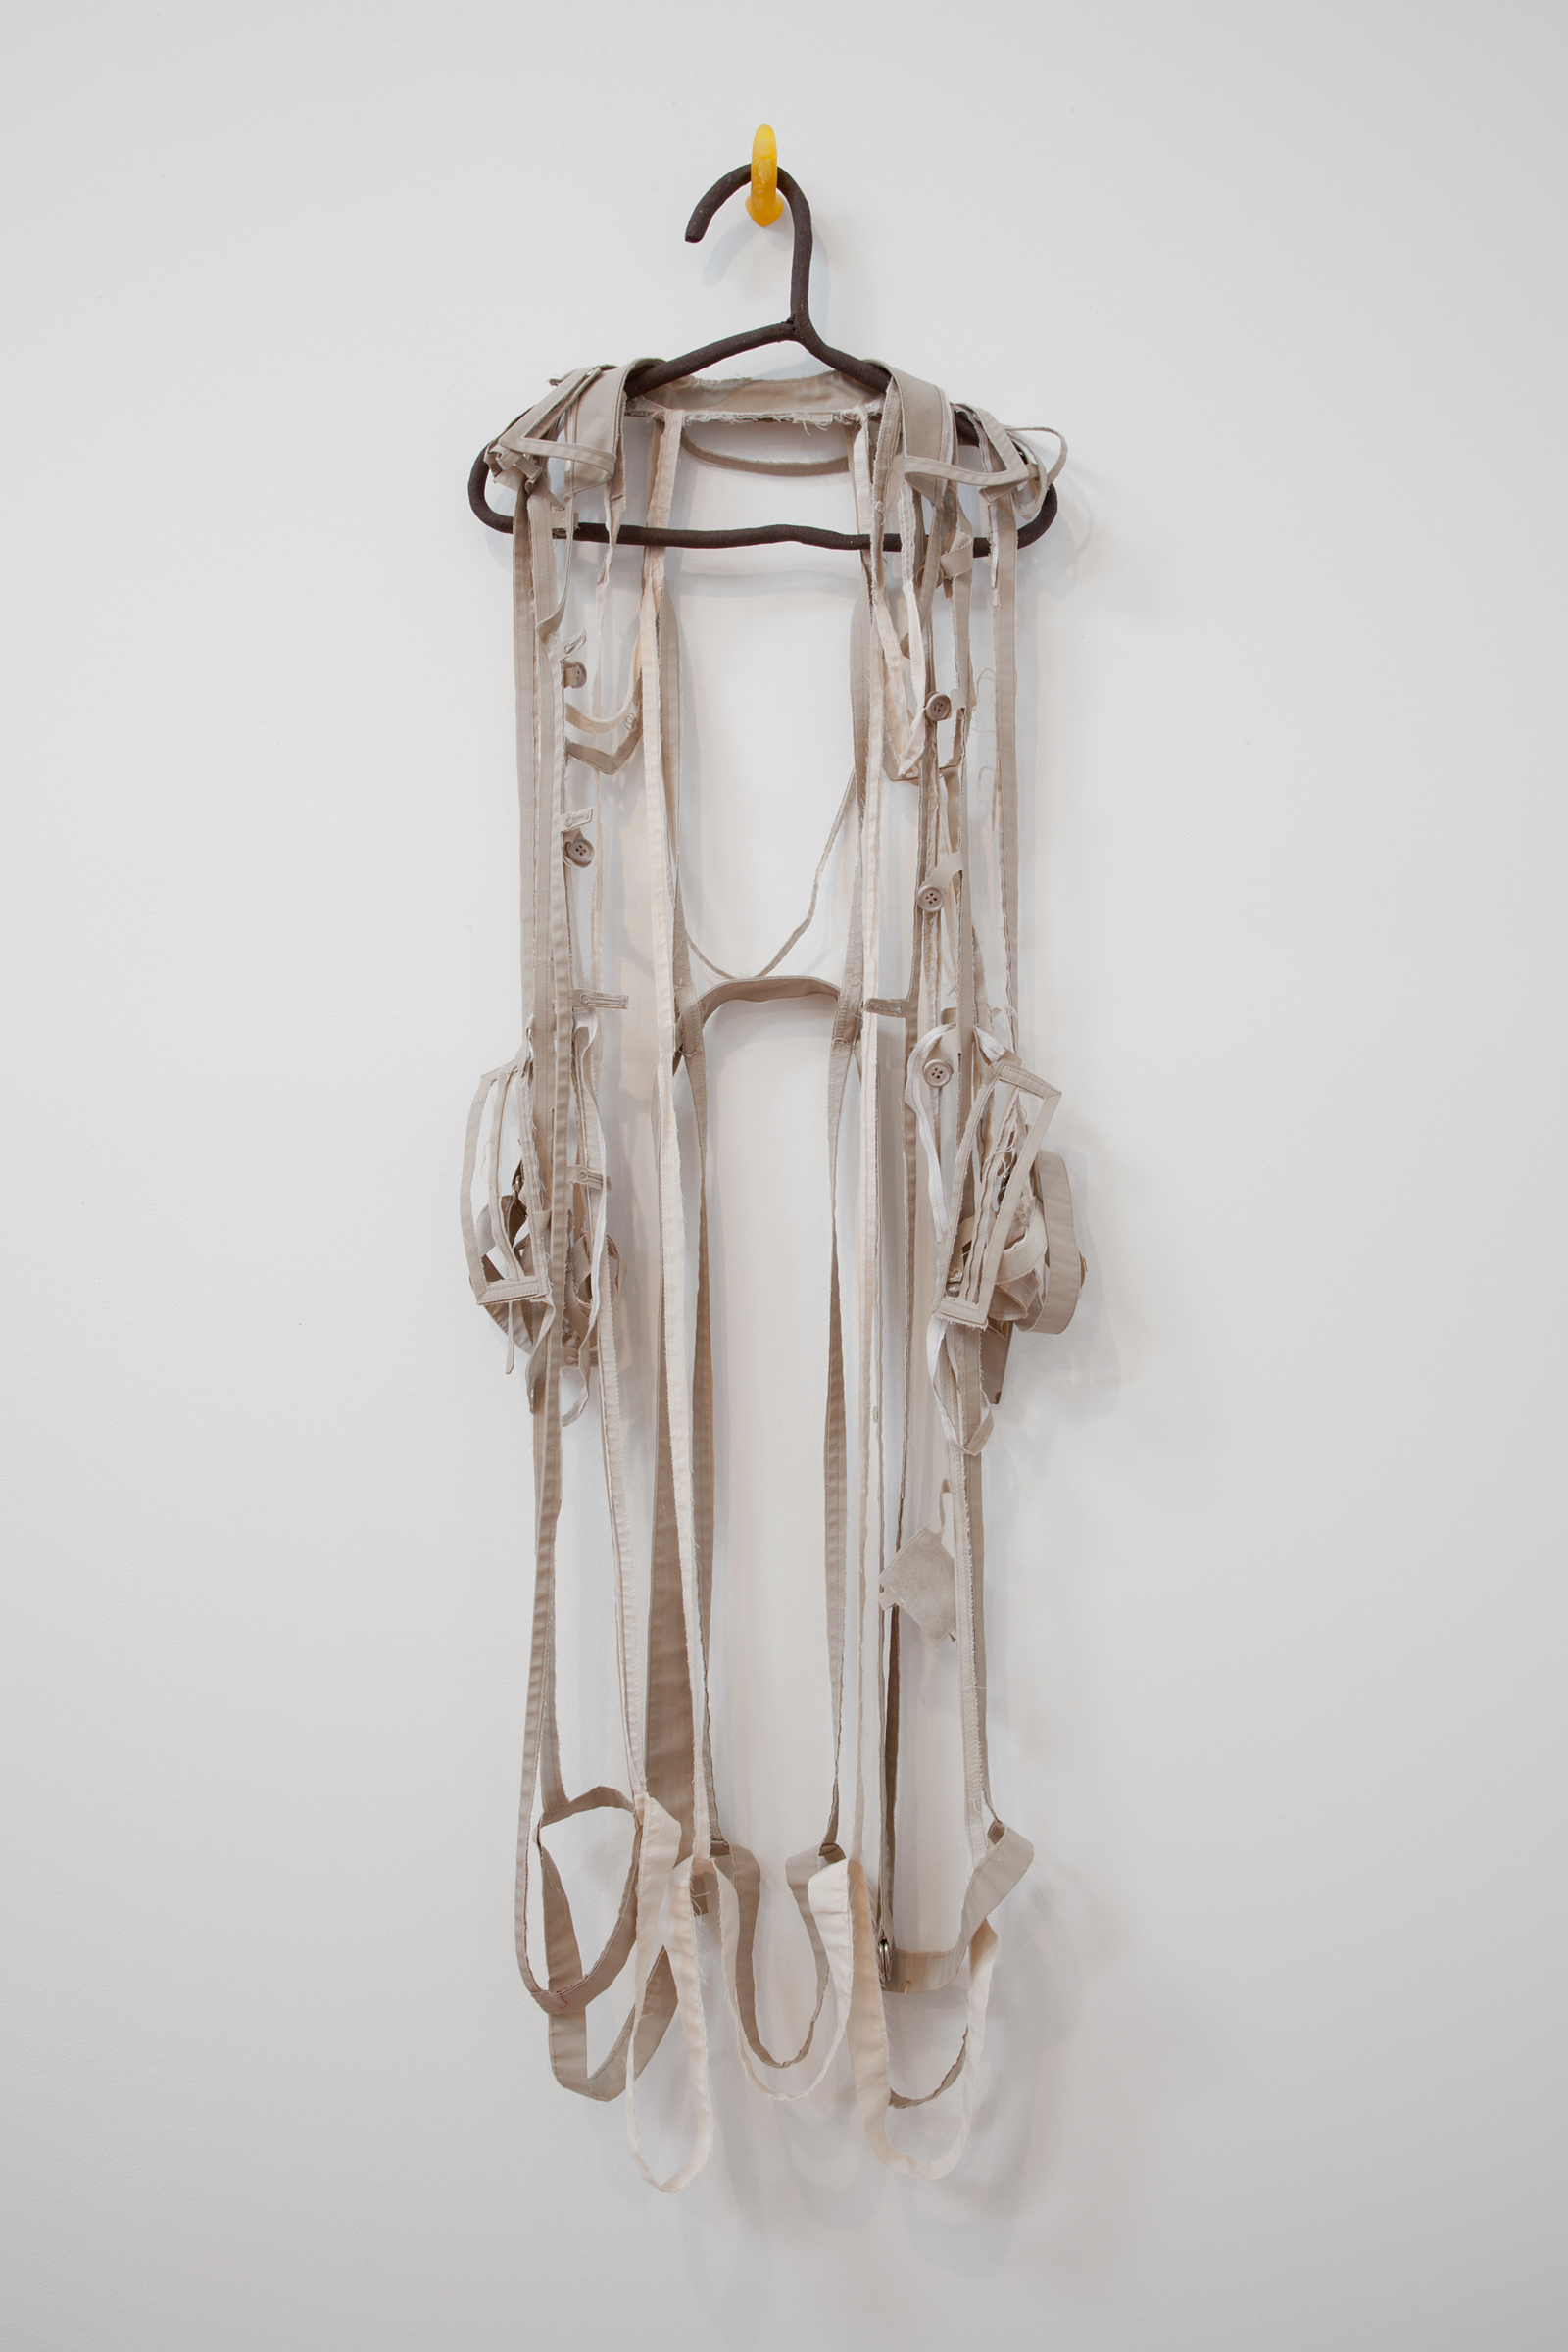 """ANNA SEW HOY   beige/cream , fired stoneware, trench coat and resin finger hook, 55"""" x 17"""" x 3.5"""", 2012"""